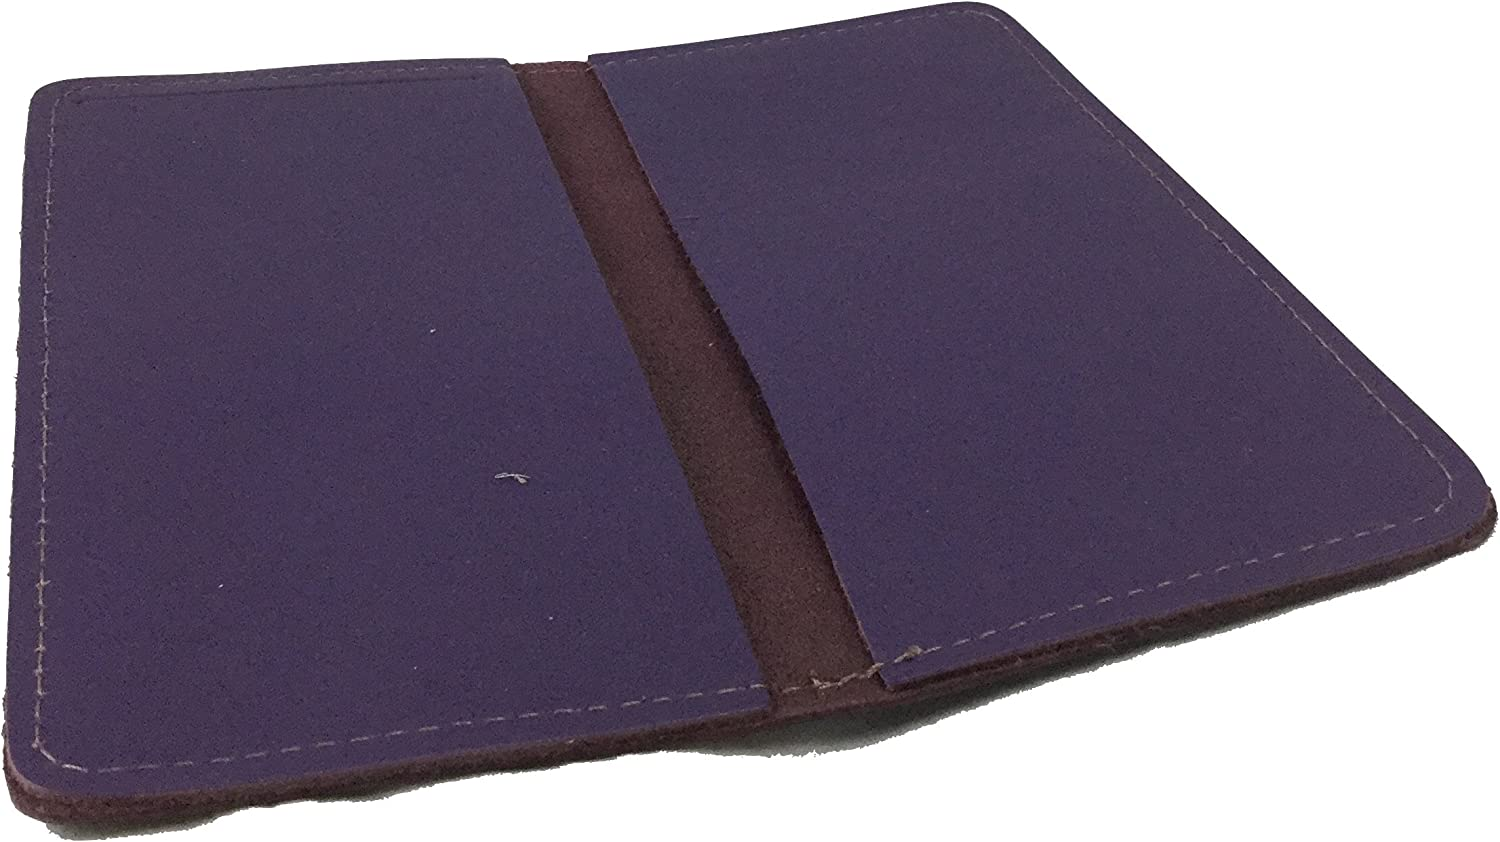 Leather Checkbook Cover Wallet for Duplicate Checks